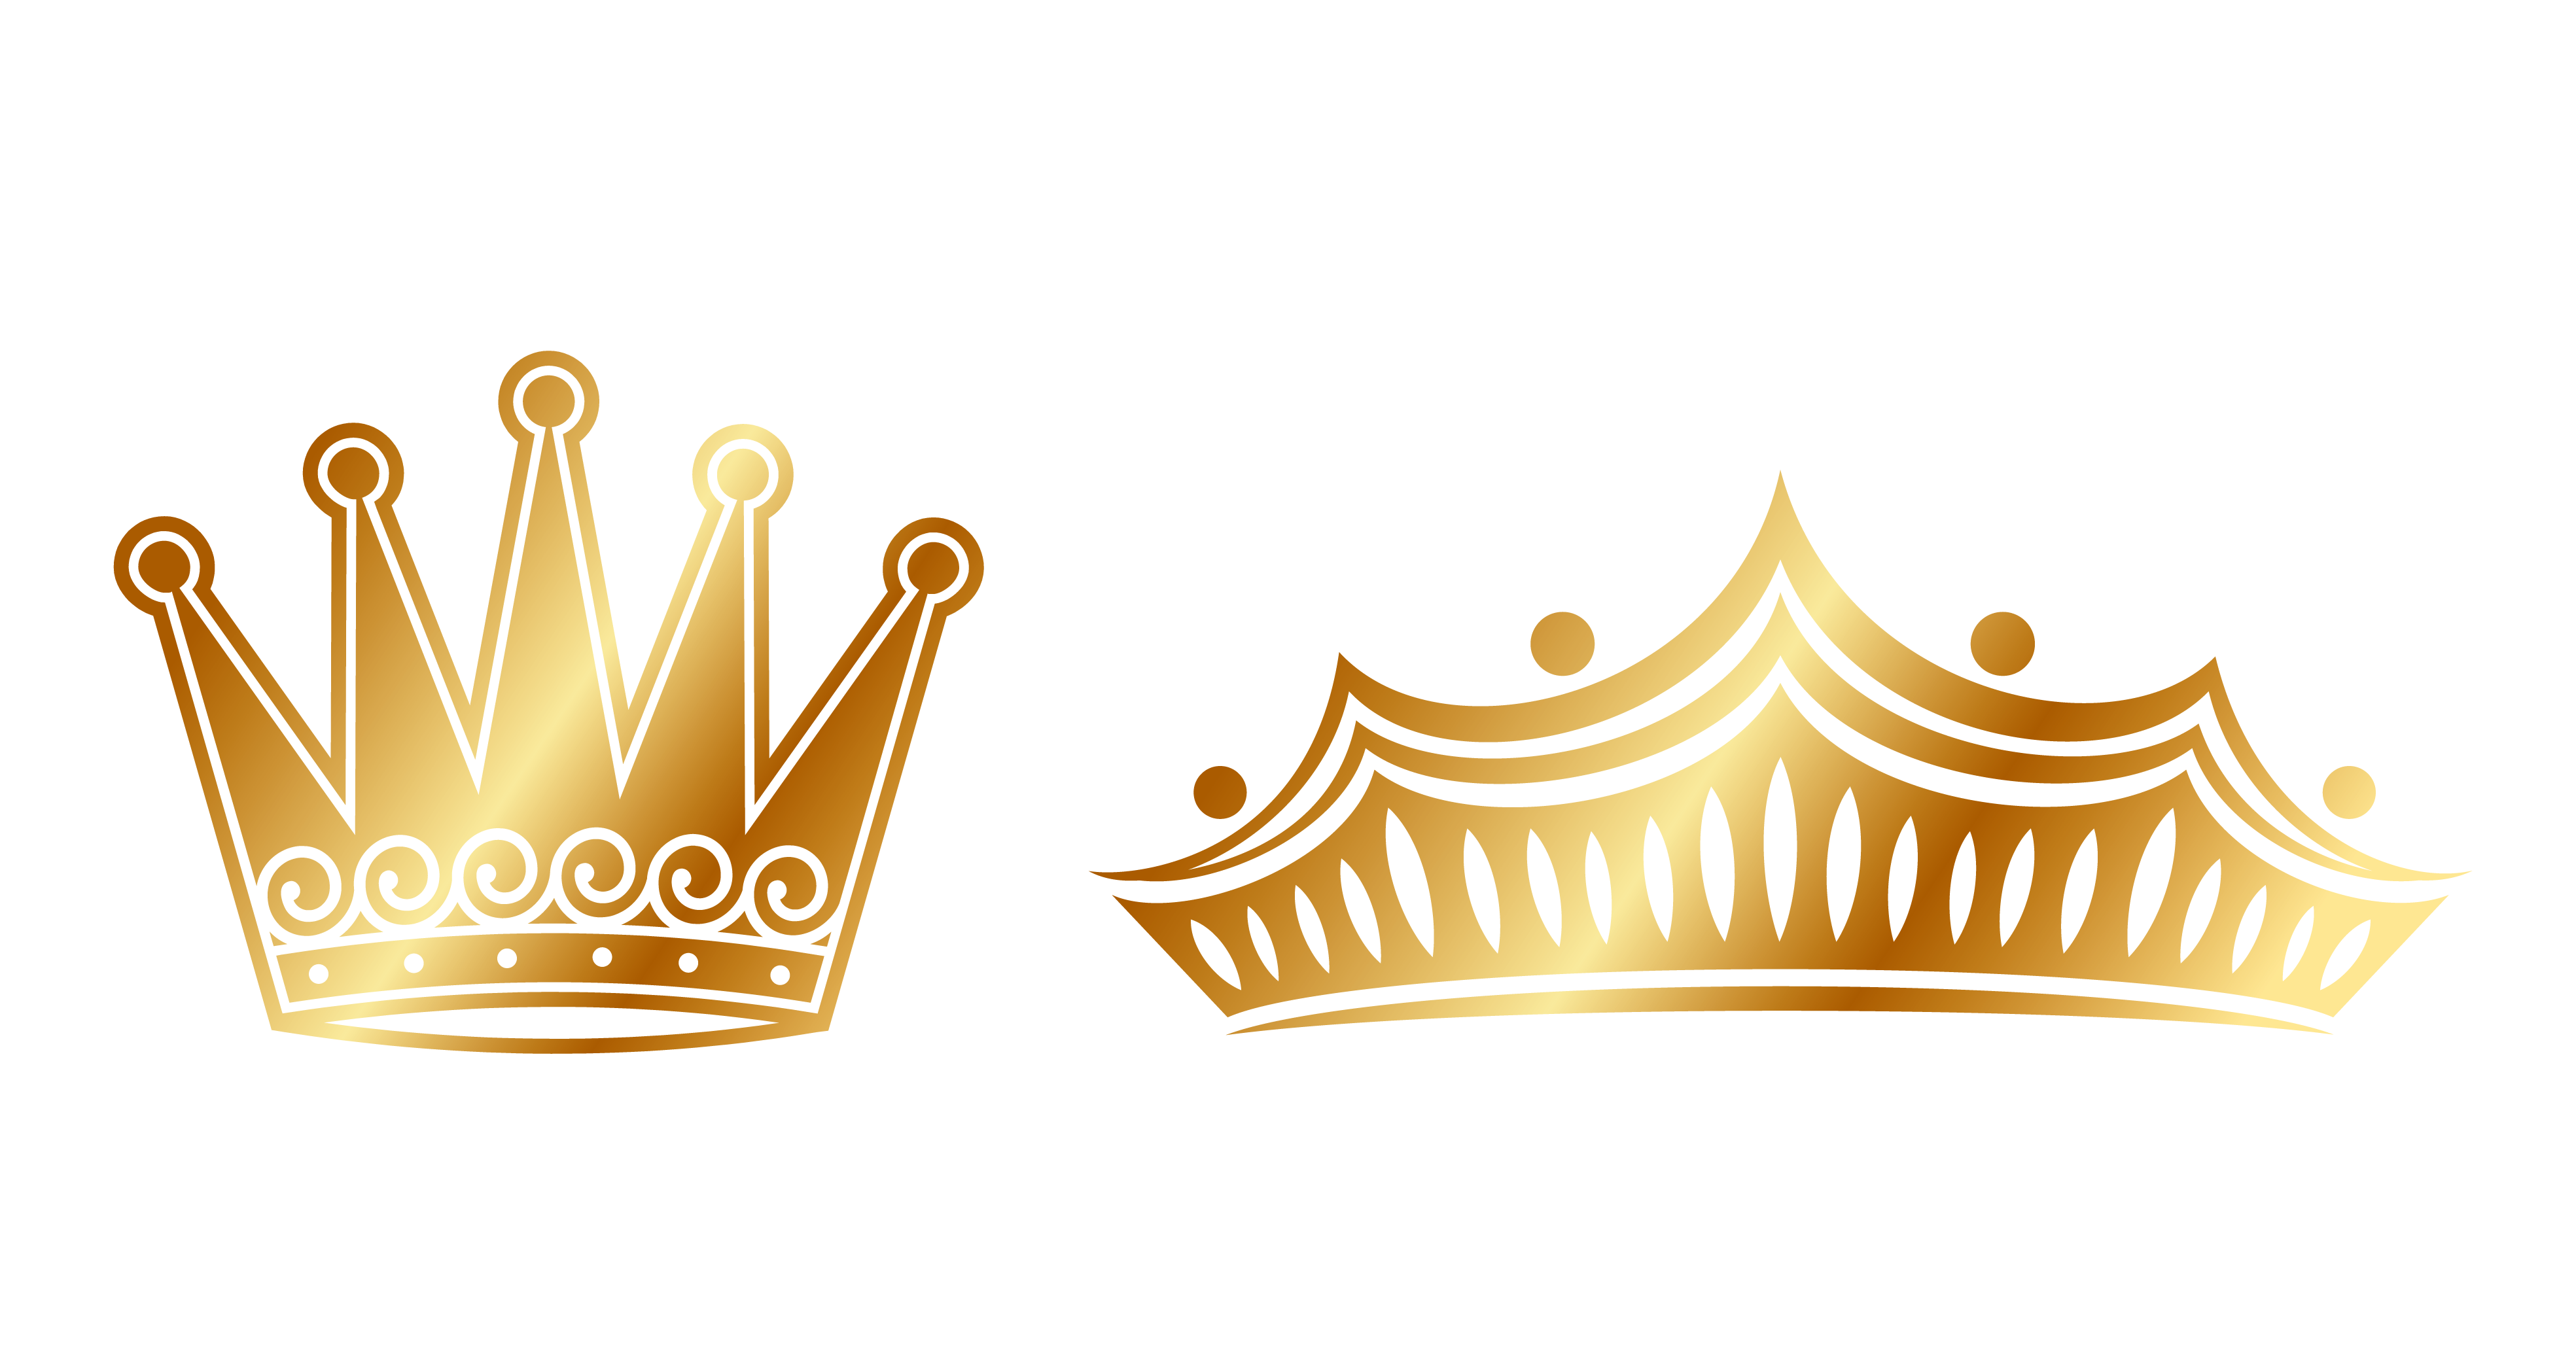 Vector crown designs clipart image freeuse Vector Crown Group (49+) image freeuse